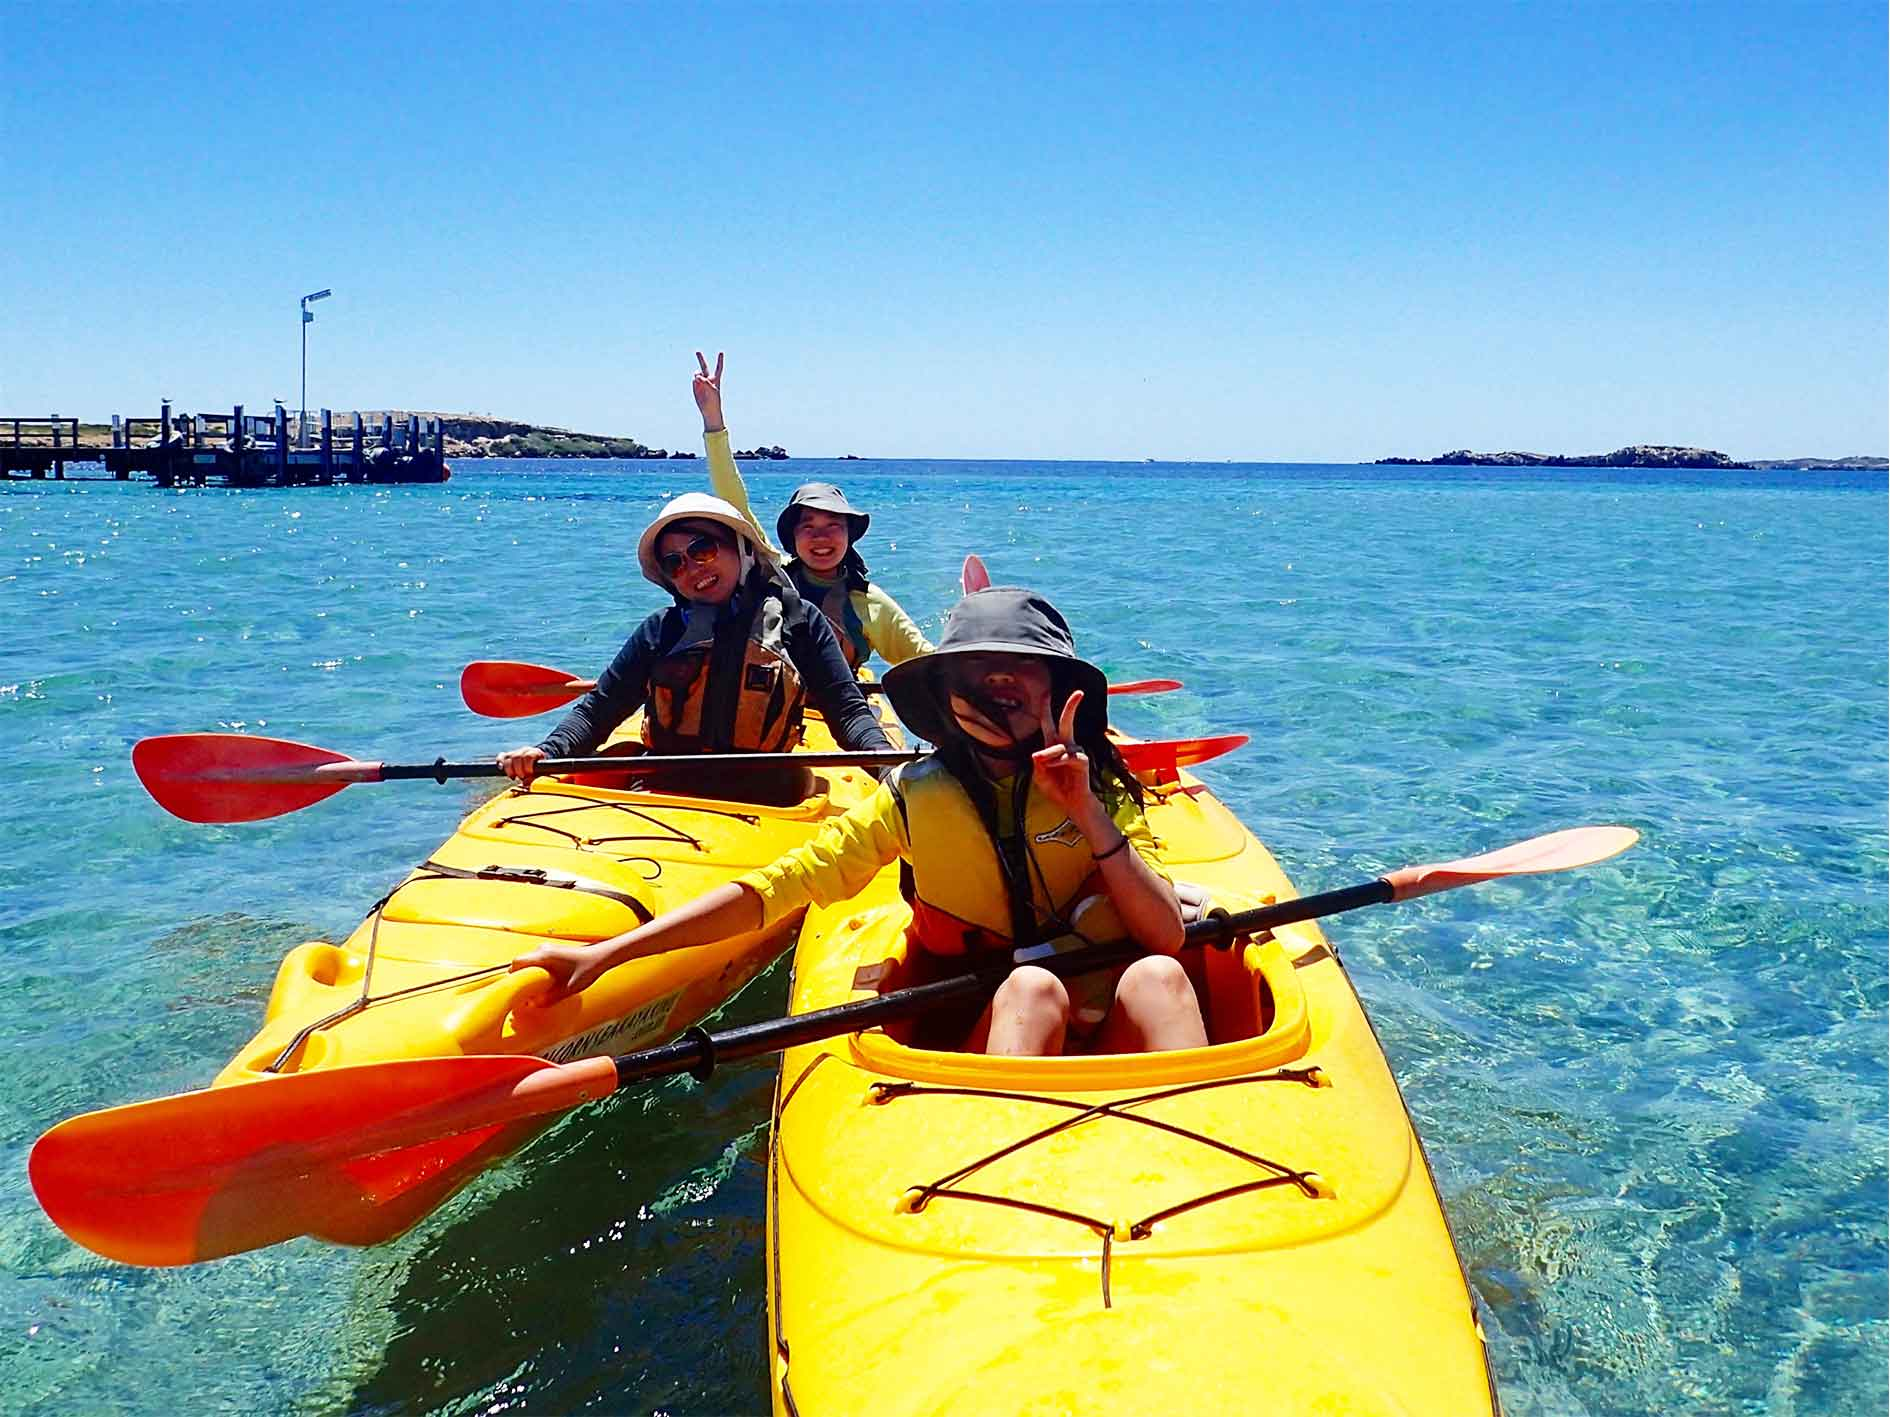 sea kayak tour, sea kayak Perth, kayak tour Perth, sea kayaking Perth, Penguin and Seal Island, eco tour kayak tour Penguin Island, wildlife tours, Nature tours Perth, Rockingham, Shoalwater Islands Marine Park, Safety Bay, Rockingham Wild Encounters, penguin, dolphin, sea lion, guided tour Perth, day tour, 1 Day Wildlife Adventure, Paddle to Penguin, Capricorn Seakayaking